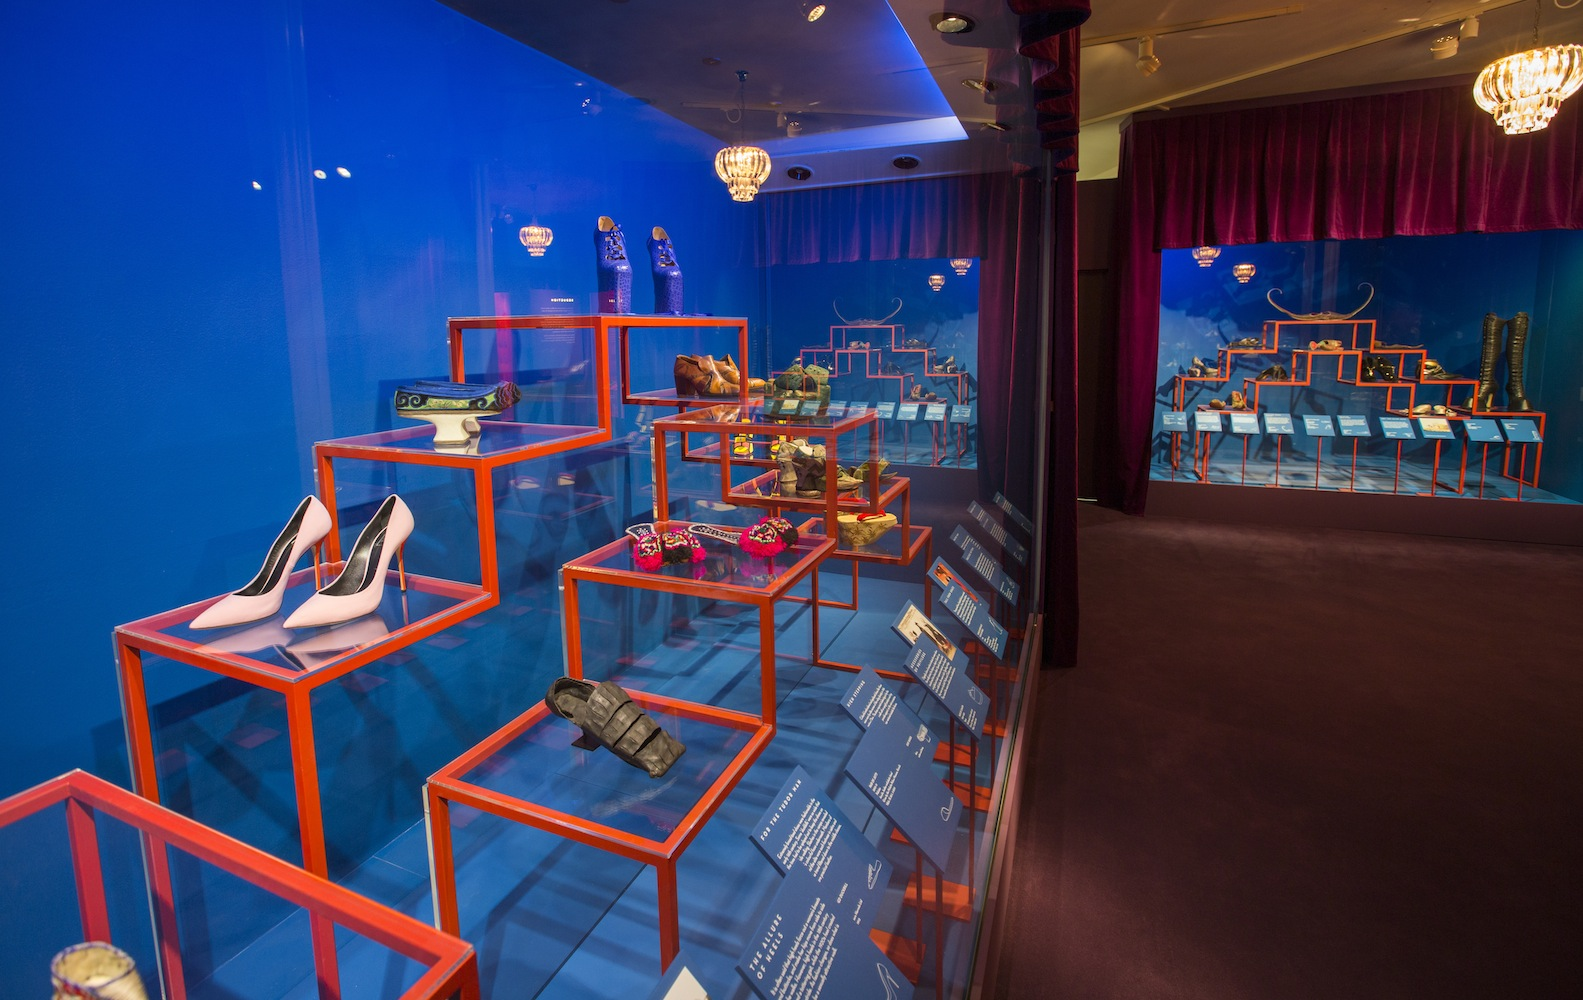 2._Installation_view_of_Shoes_Pleasure_and_Pain_13_June_2015_-_31_January_2016_c_Victoria_and_Albert_Museum_London.jpg